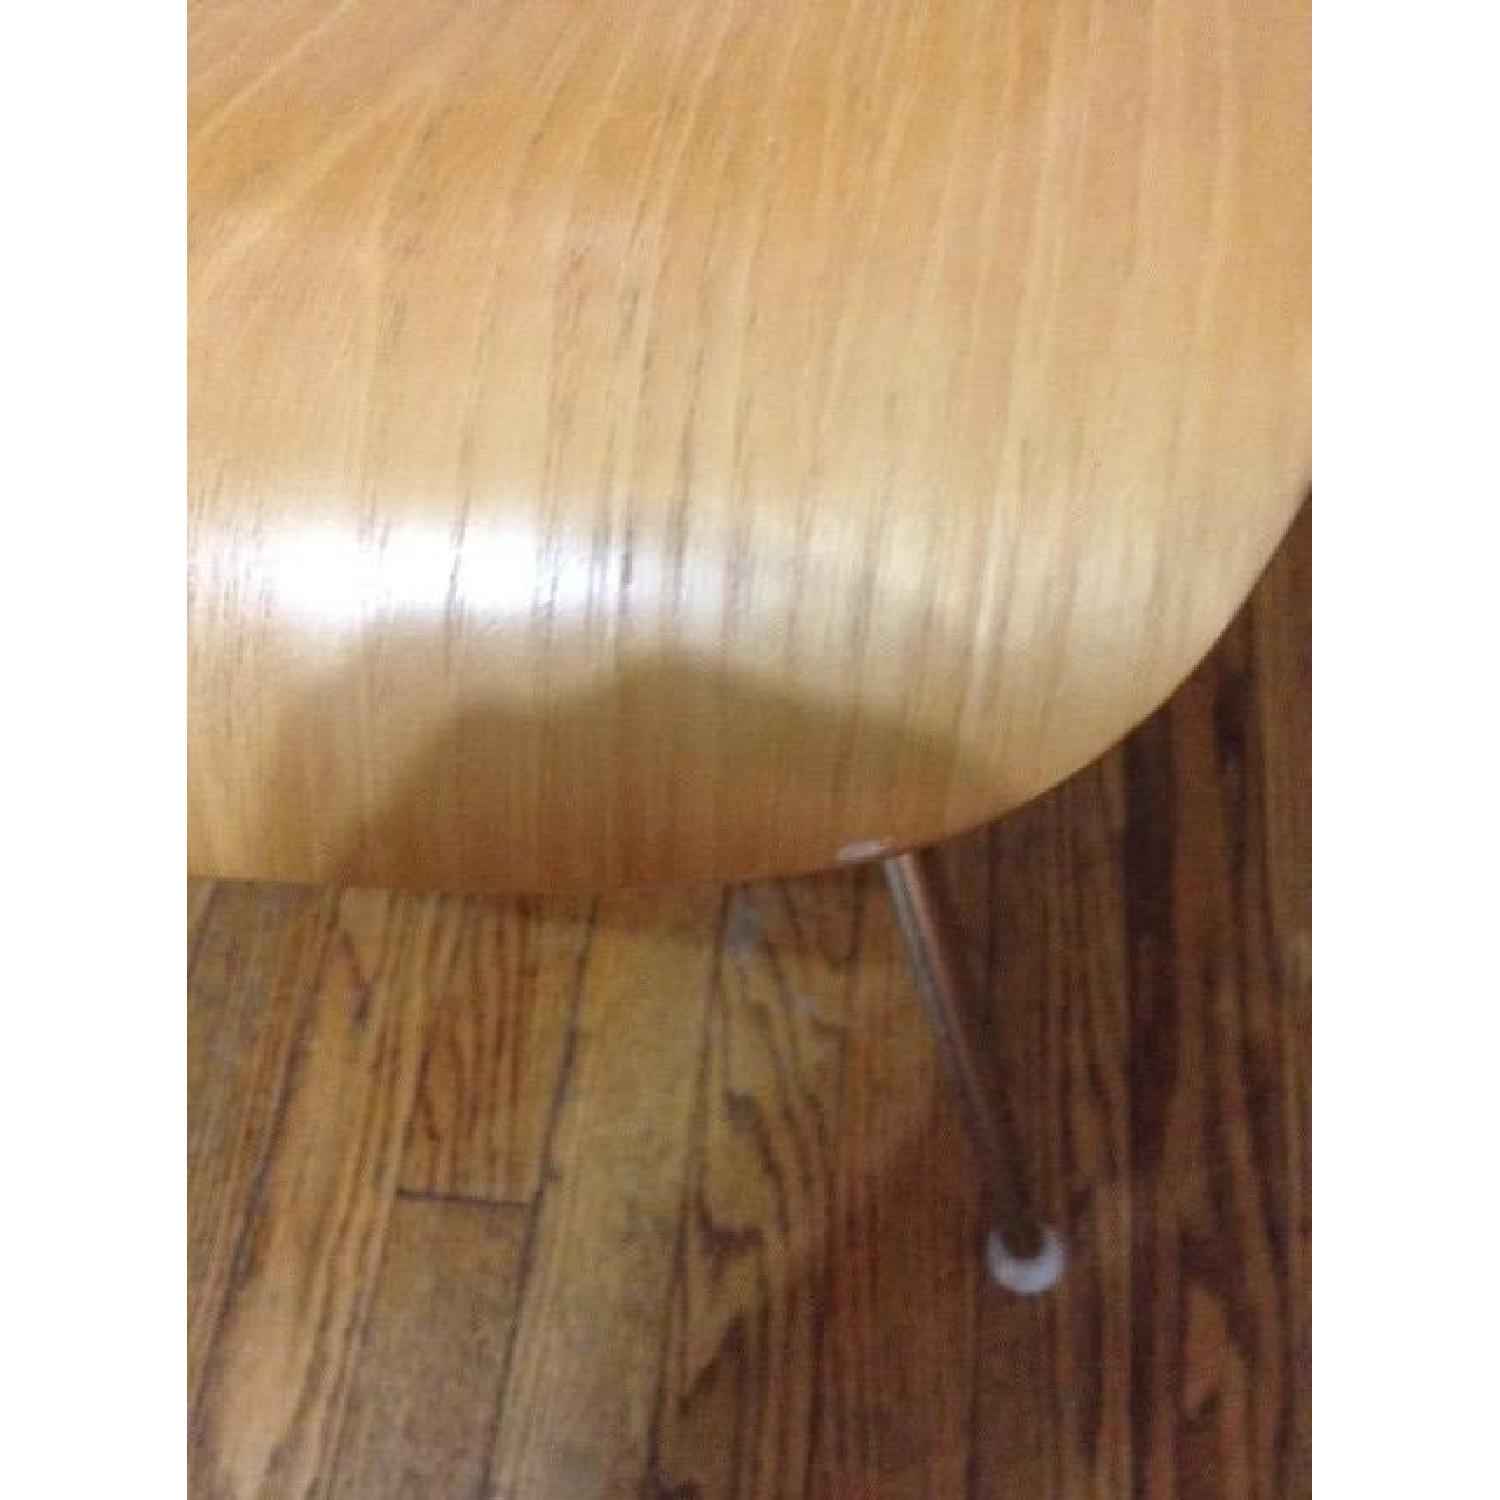 Charles and Ray Eames Dining Chairs - Pair - image-2